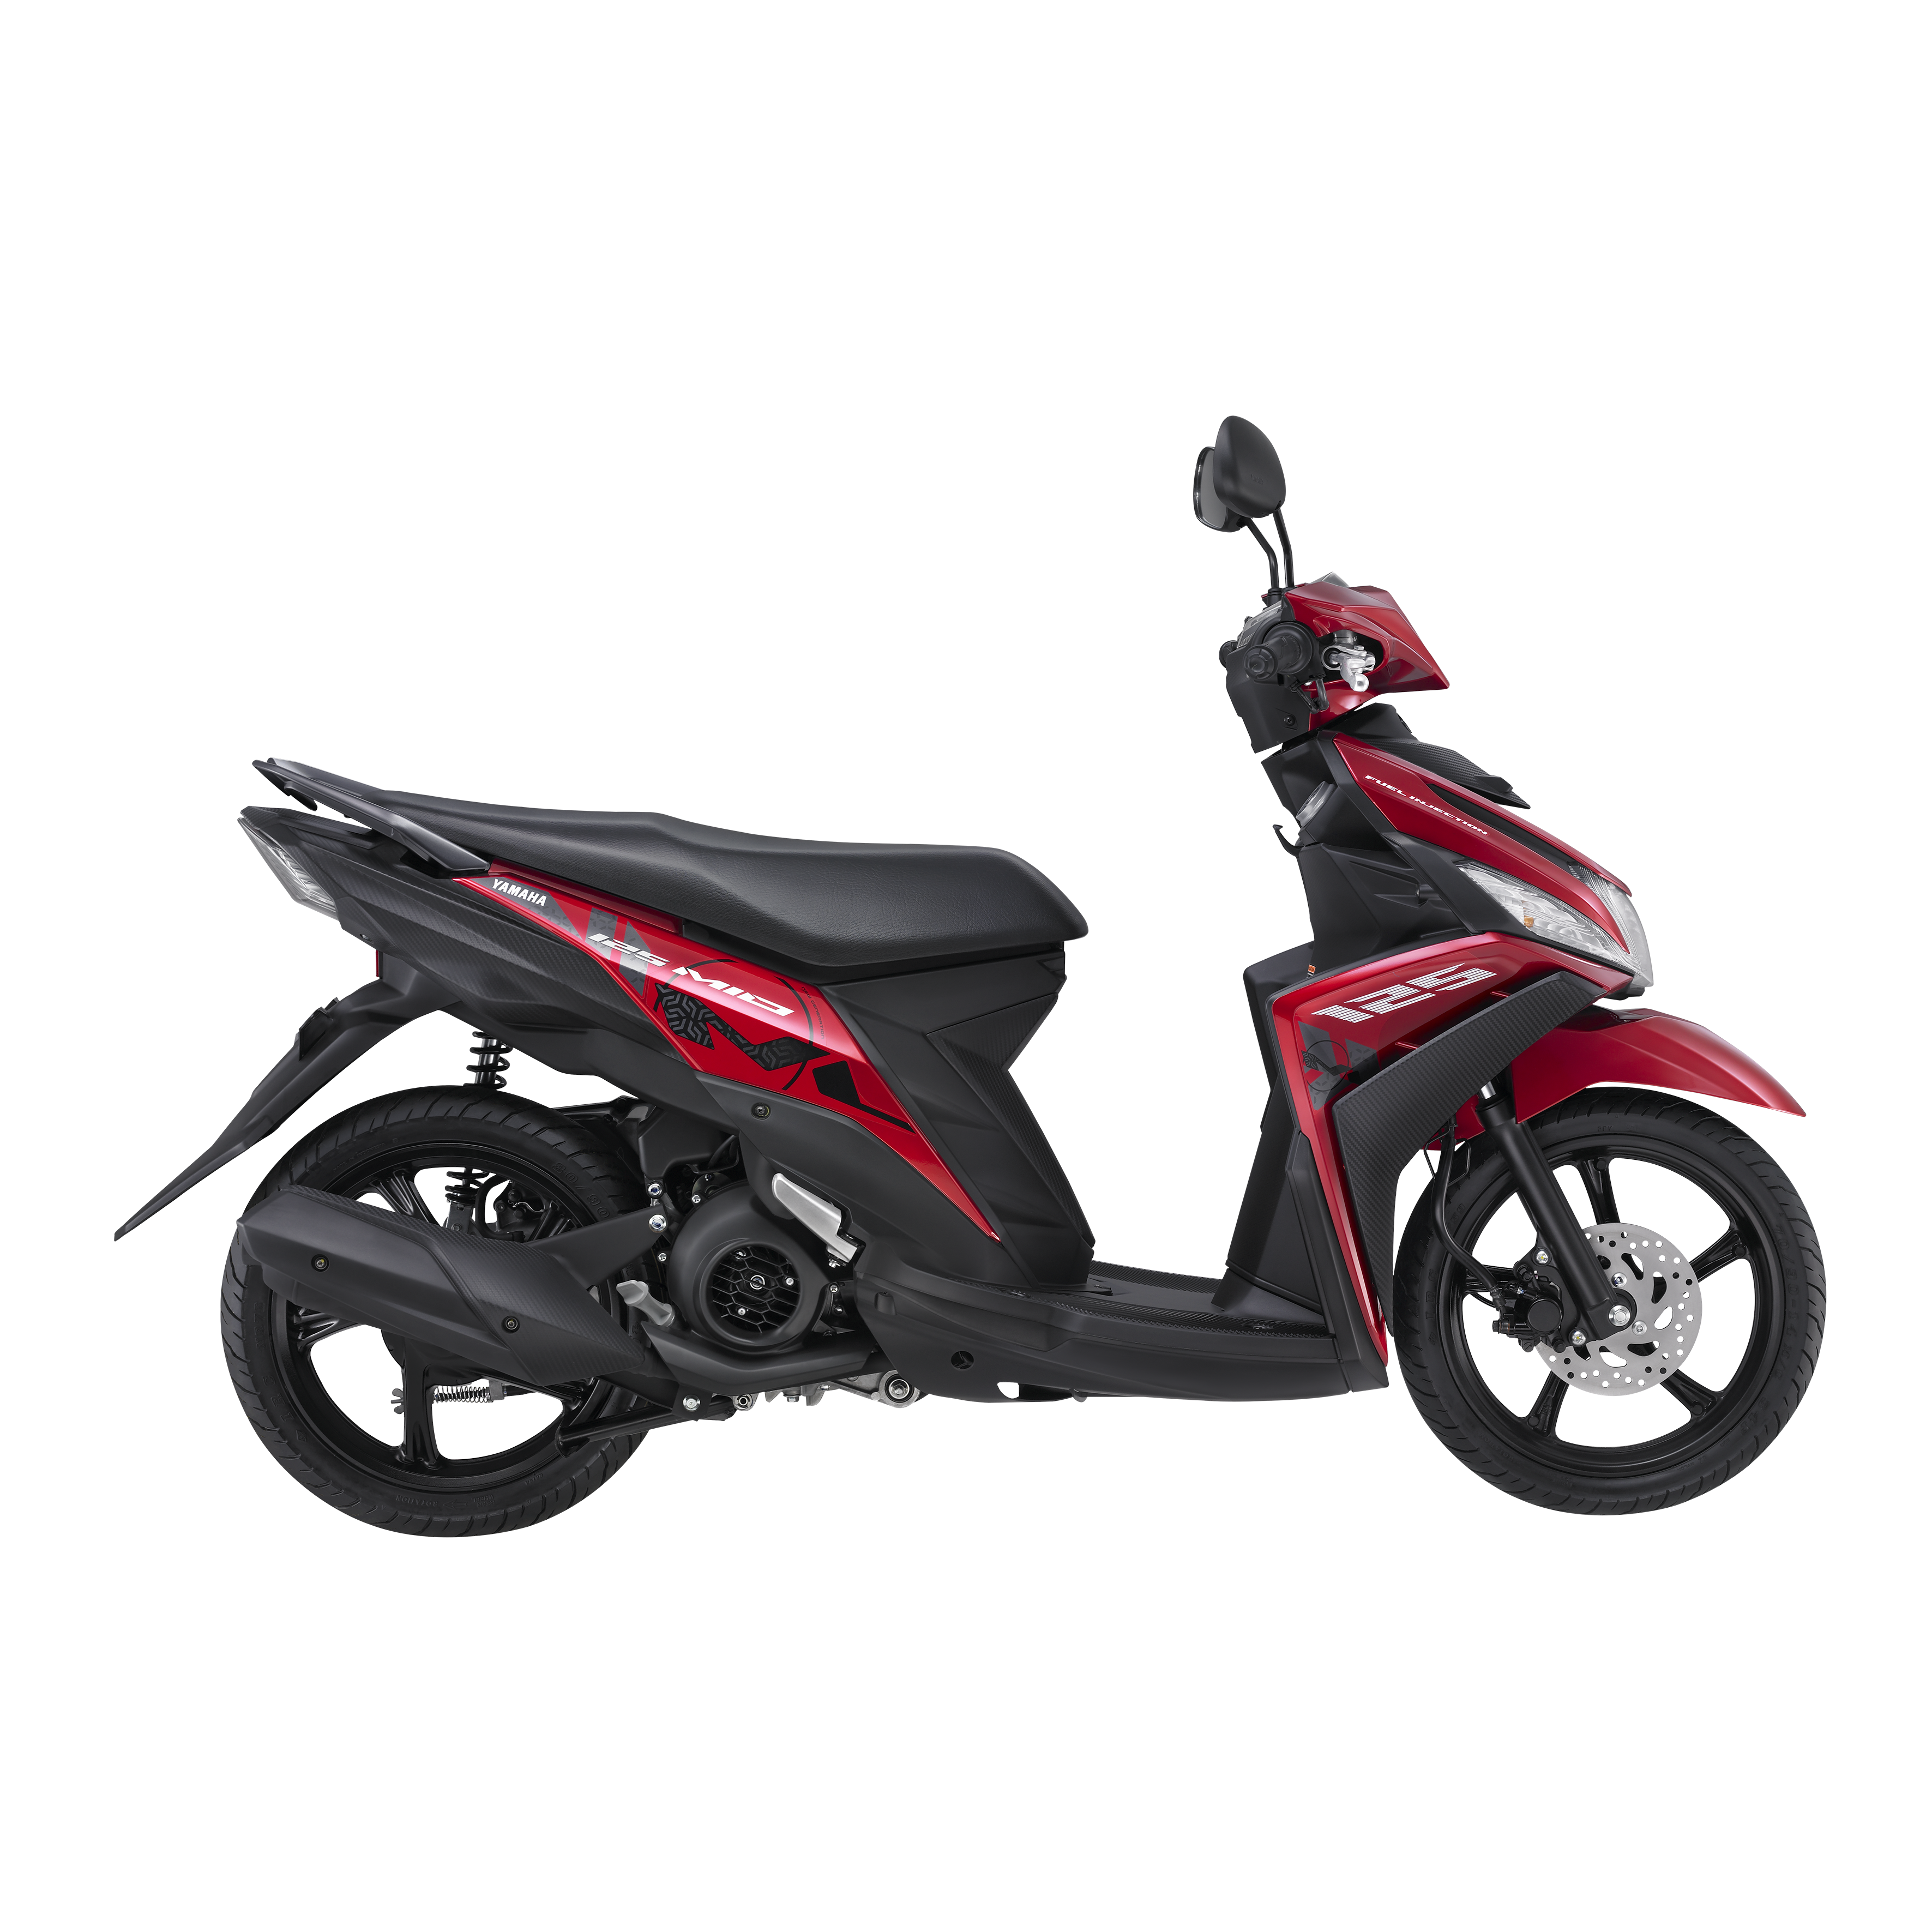 Yamaha Motor NEW Mio M3 125 Blue Core